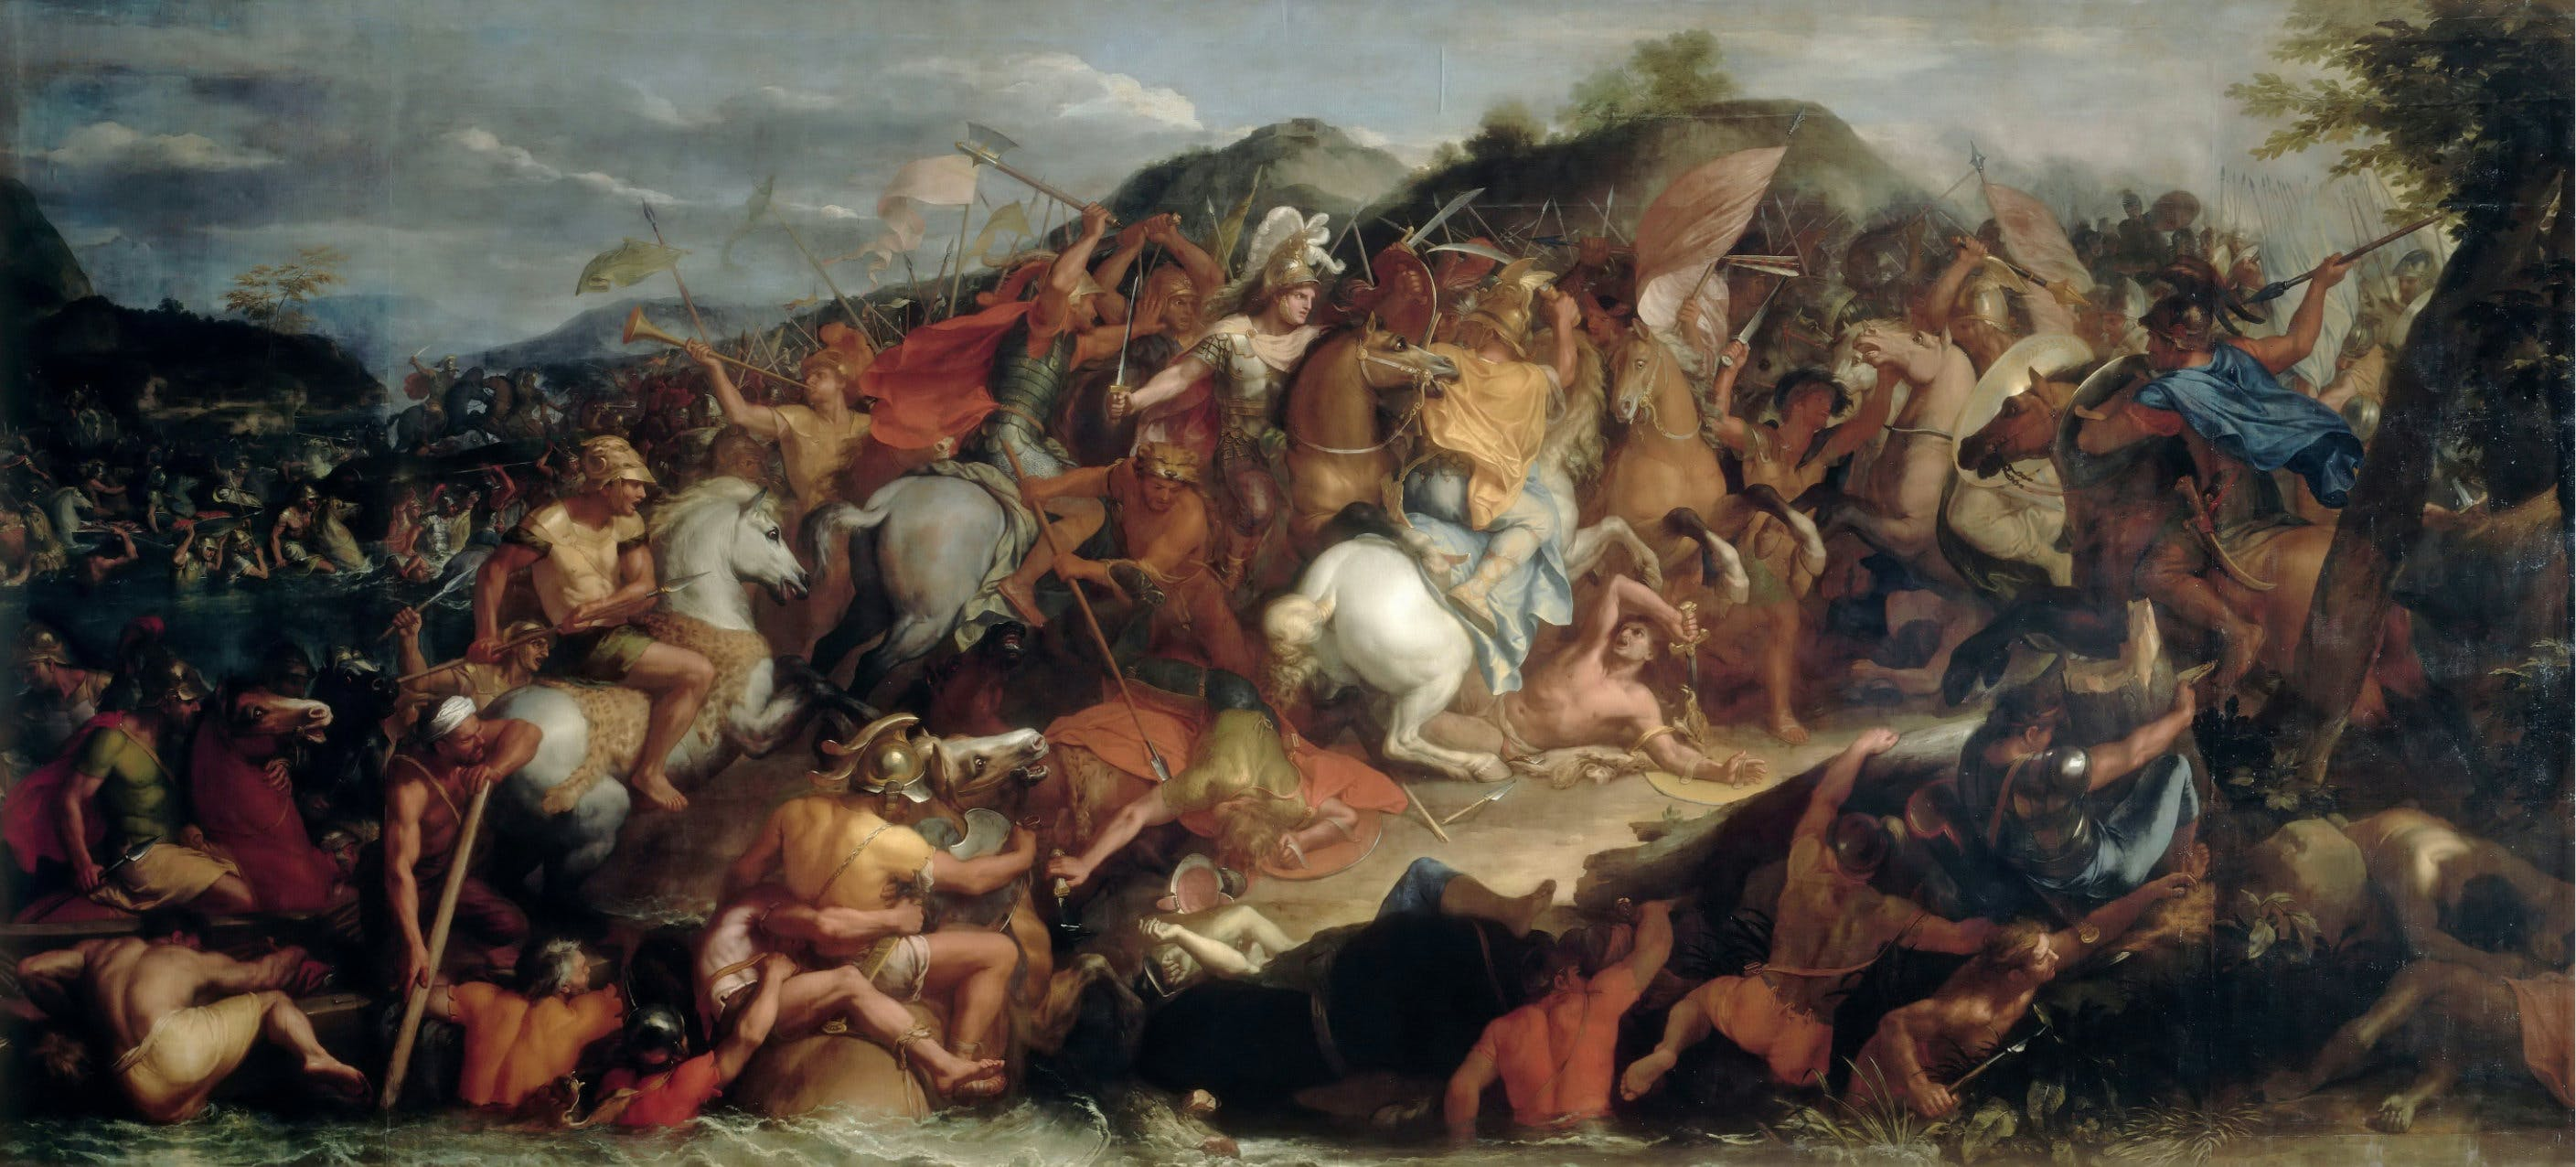 The Battle of the Granicus Riverby Charles Le Brun, 1665. Image: Wikipedia